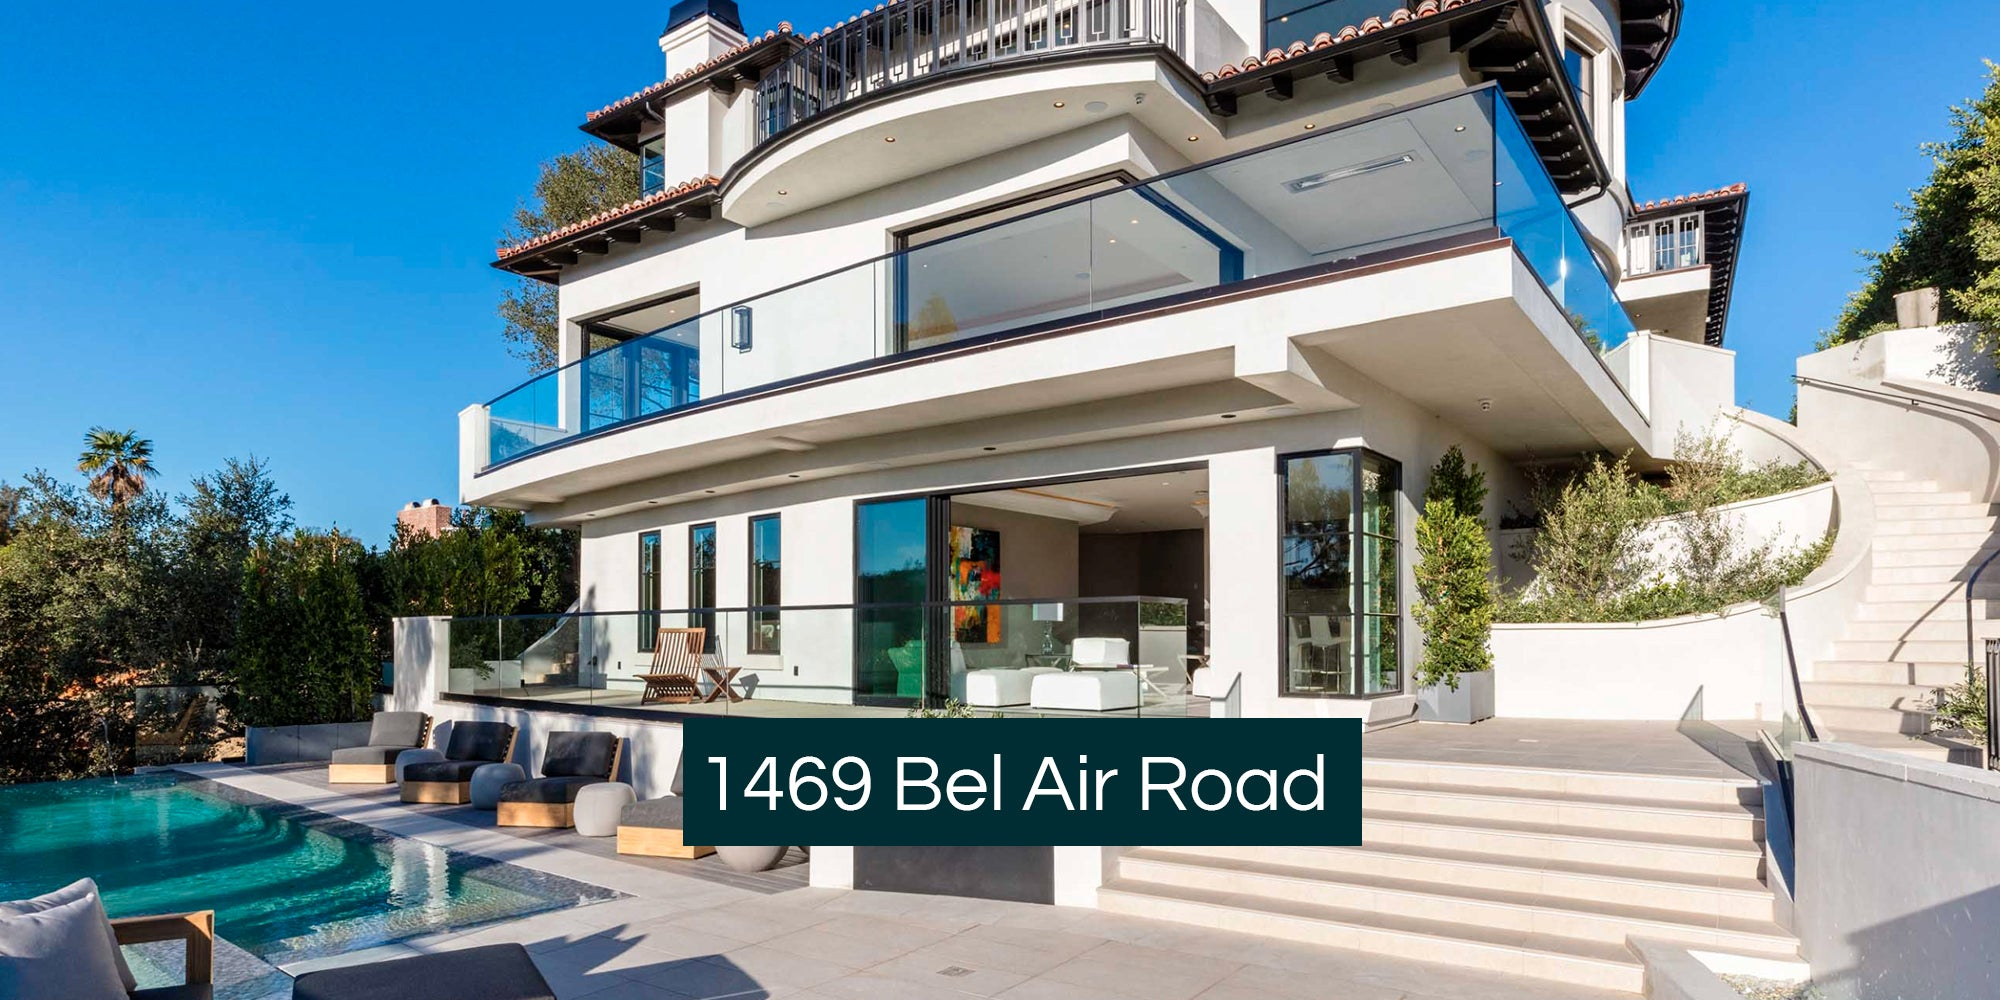 1469 Bel Air Road